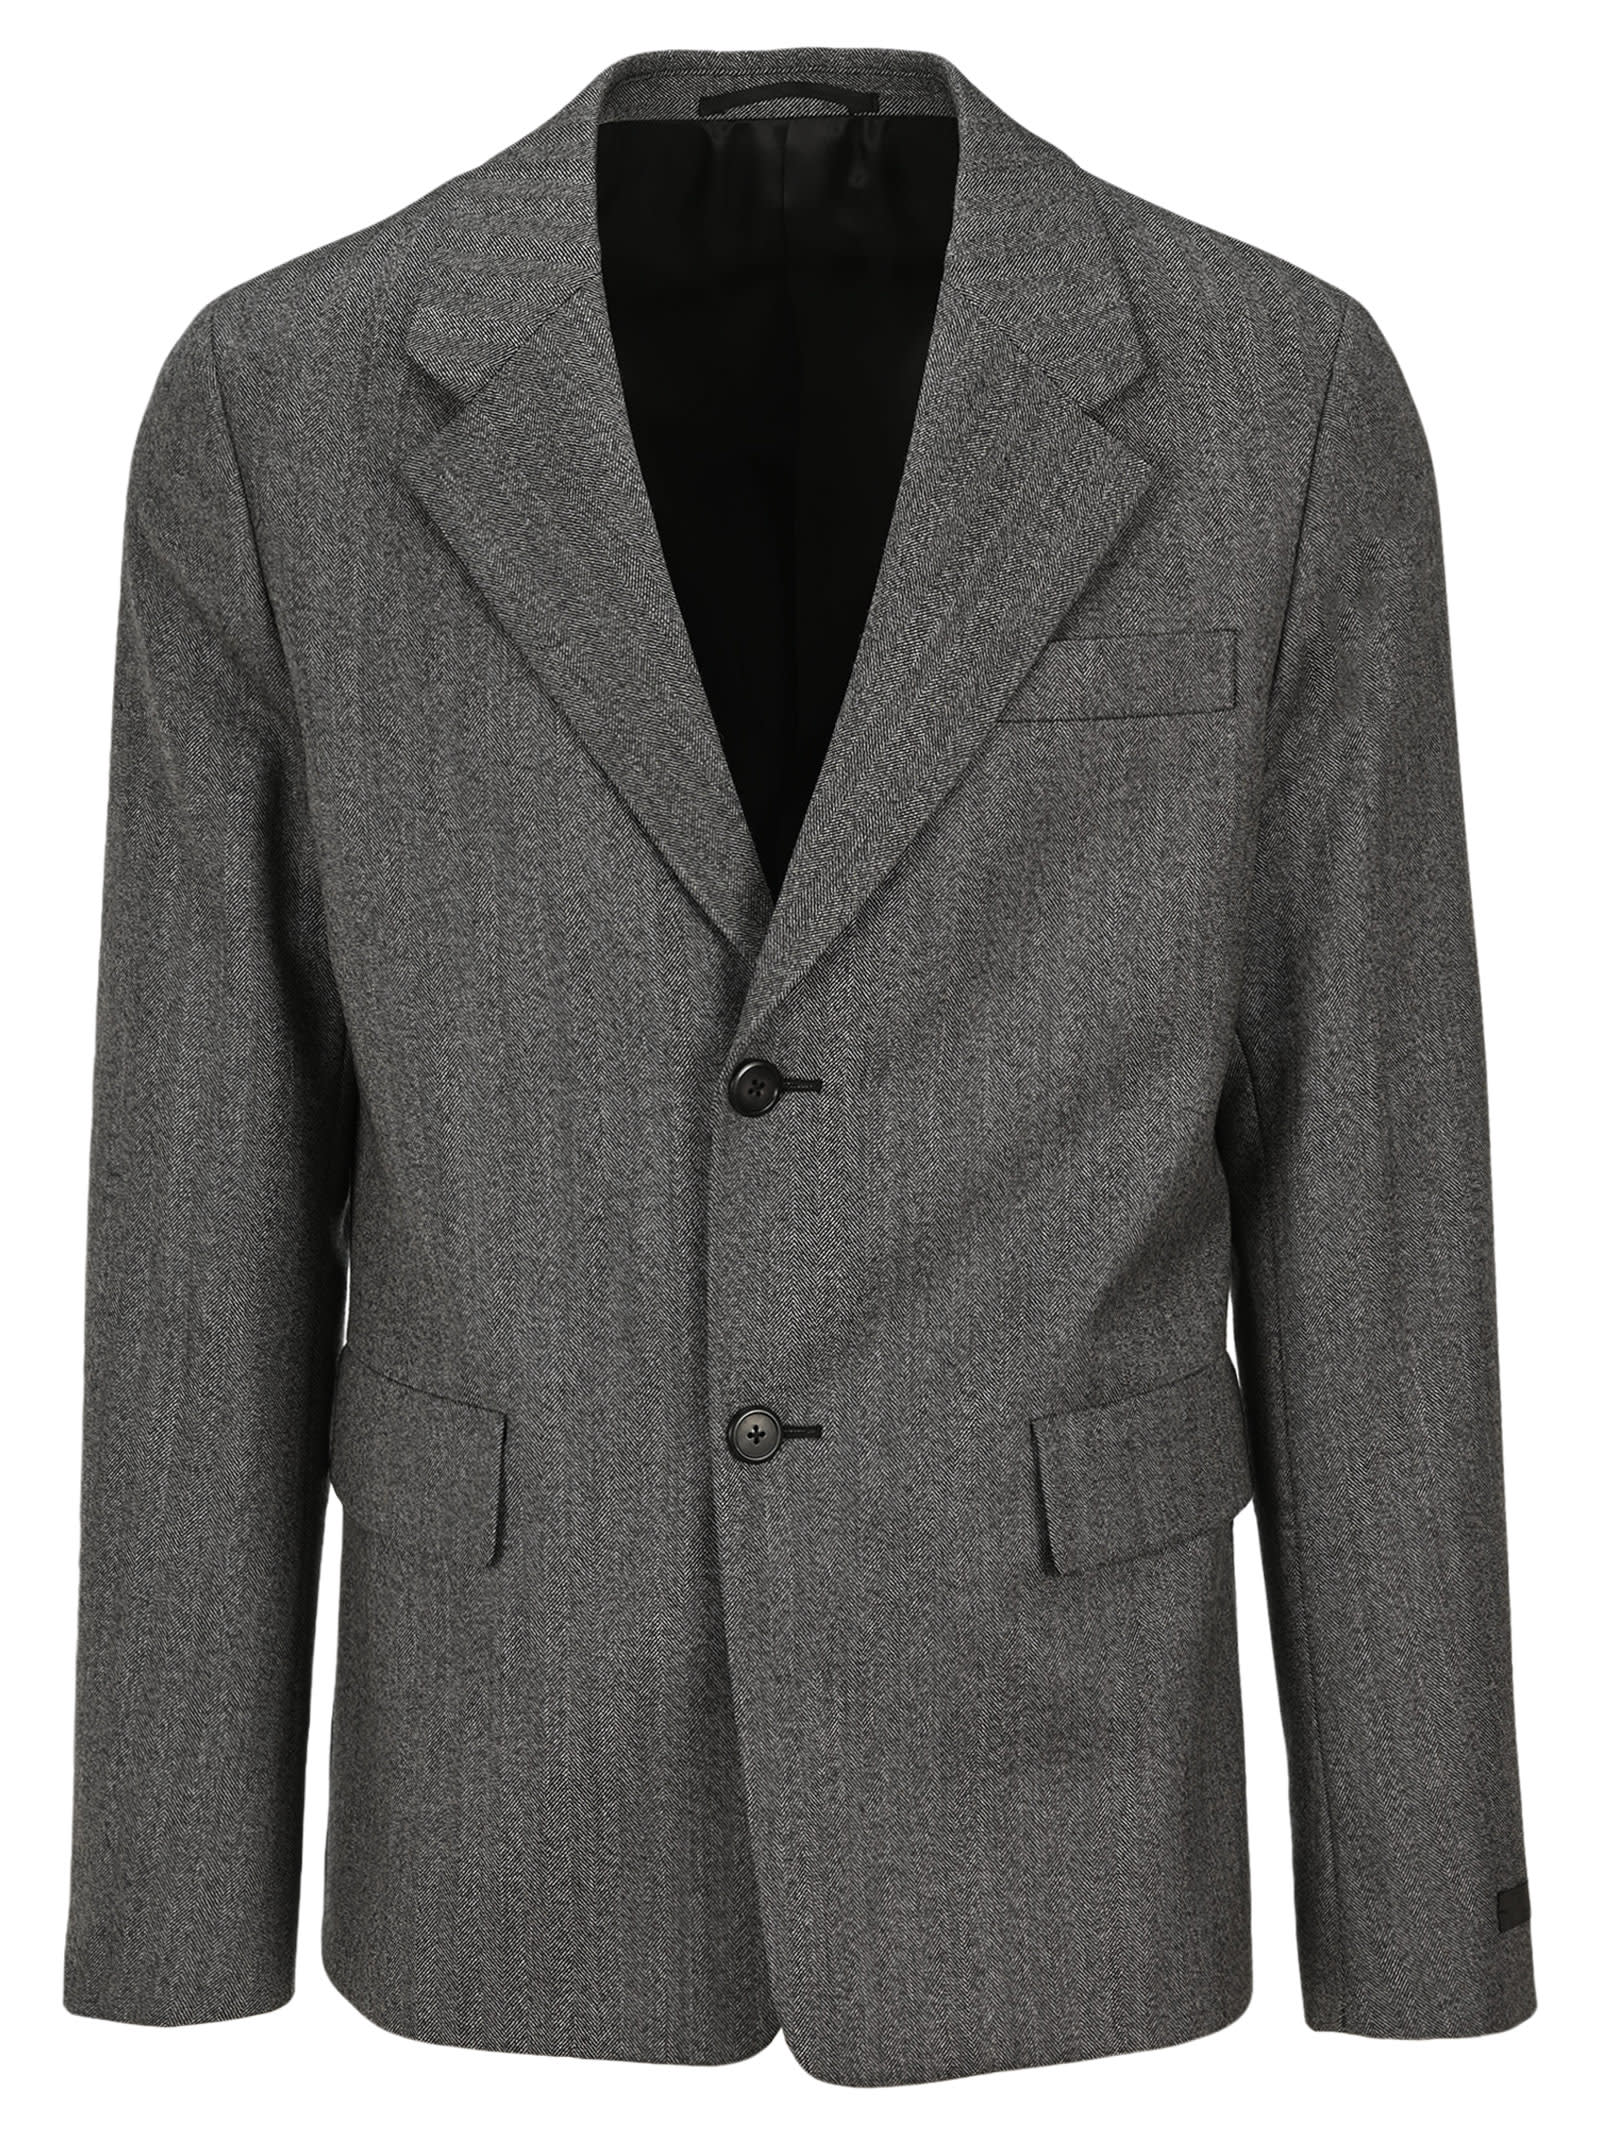 Prada Single-breasted Herringbone Blazer